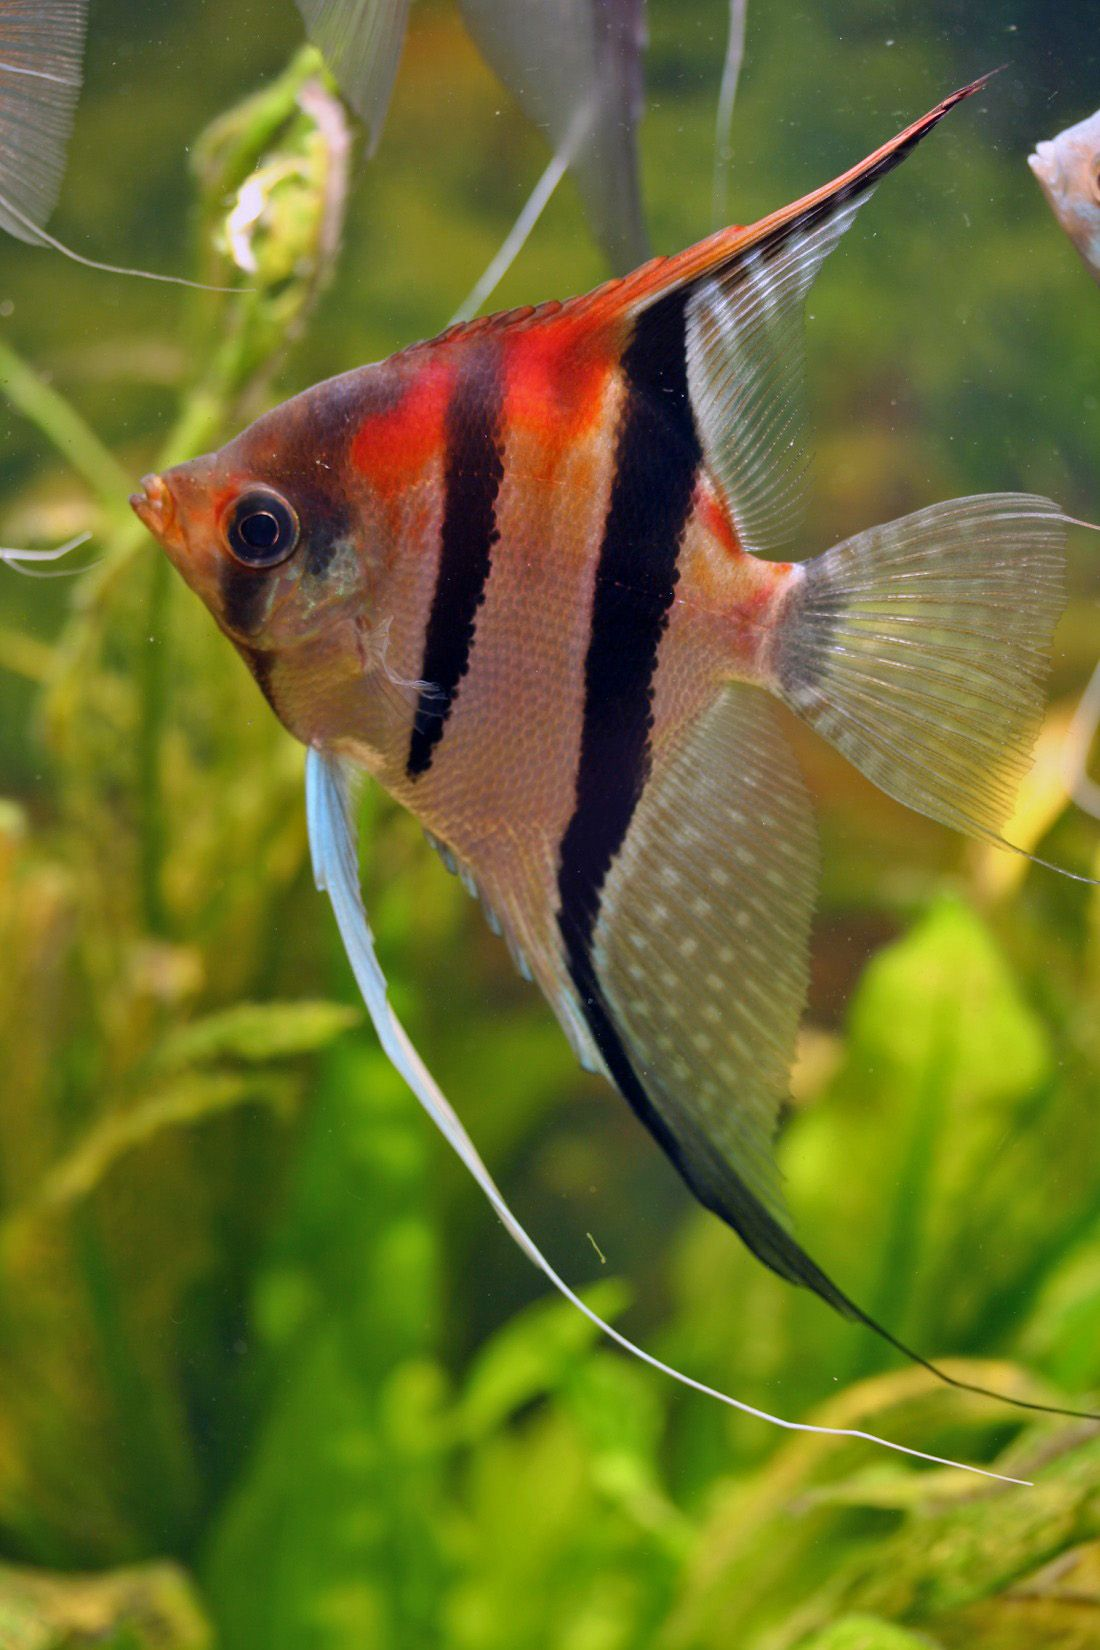 Freshwater aquarium fish list species - Summary Some Of The Most Exquisite Beautiful Tropical Fishes Are Available For Sale Online There Are Various Sites That Showcase Fishes Of Highest